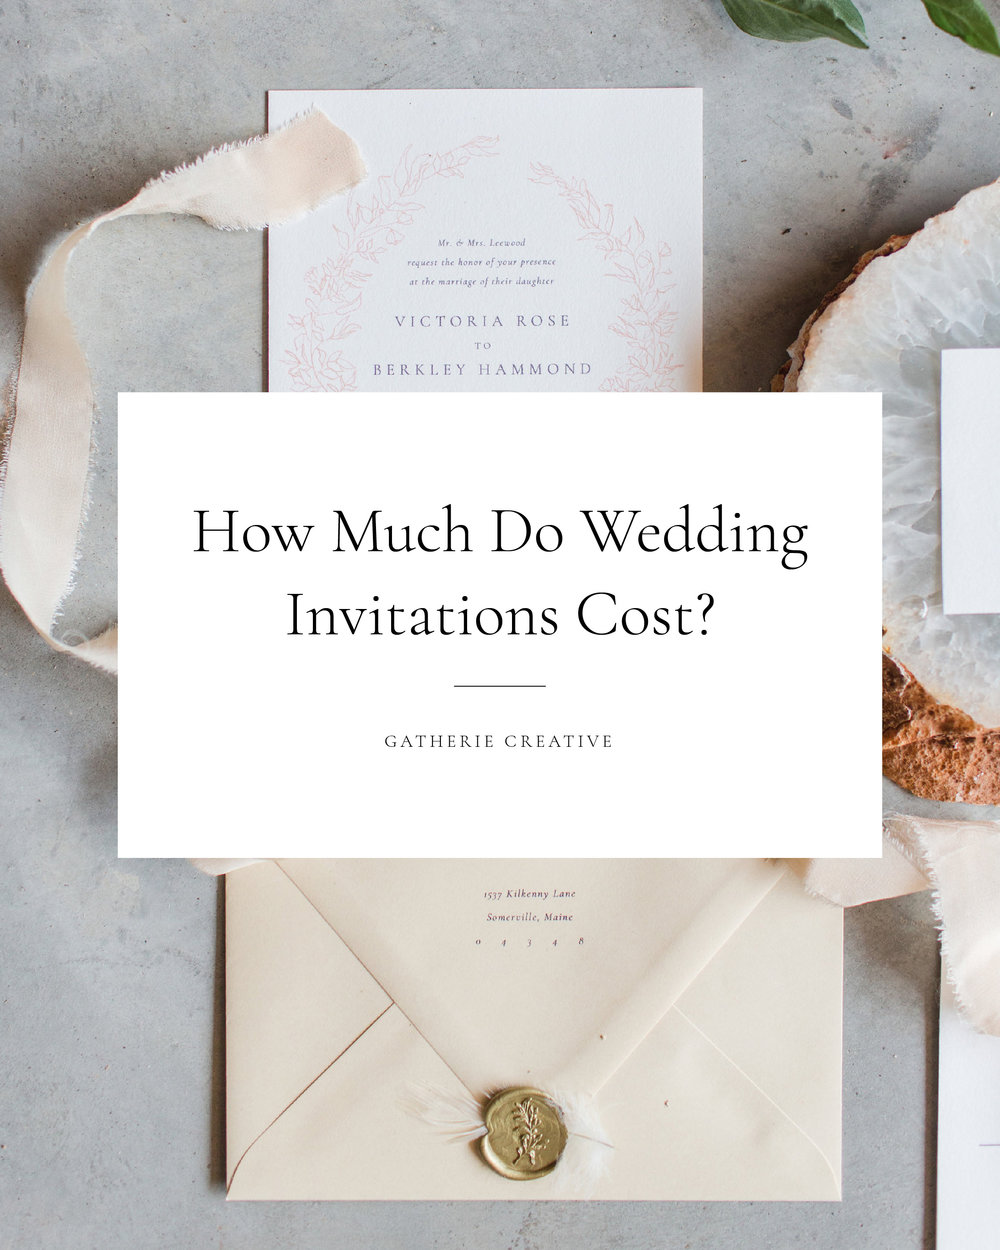 Gatherie Creative — HOW MUCH DO WEDDING INVITATIONS COST?